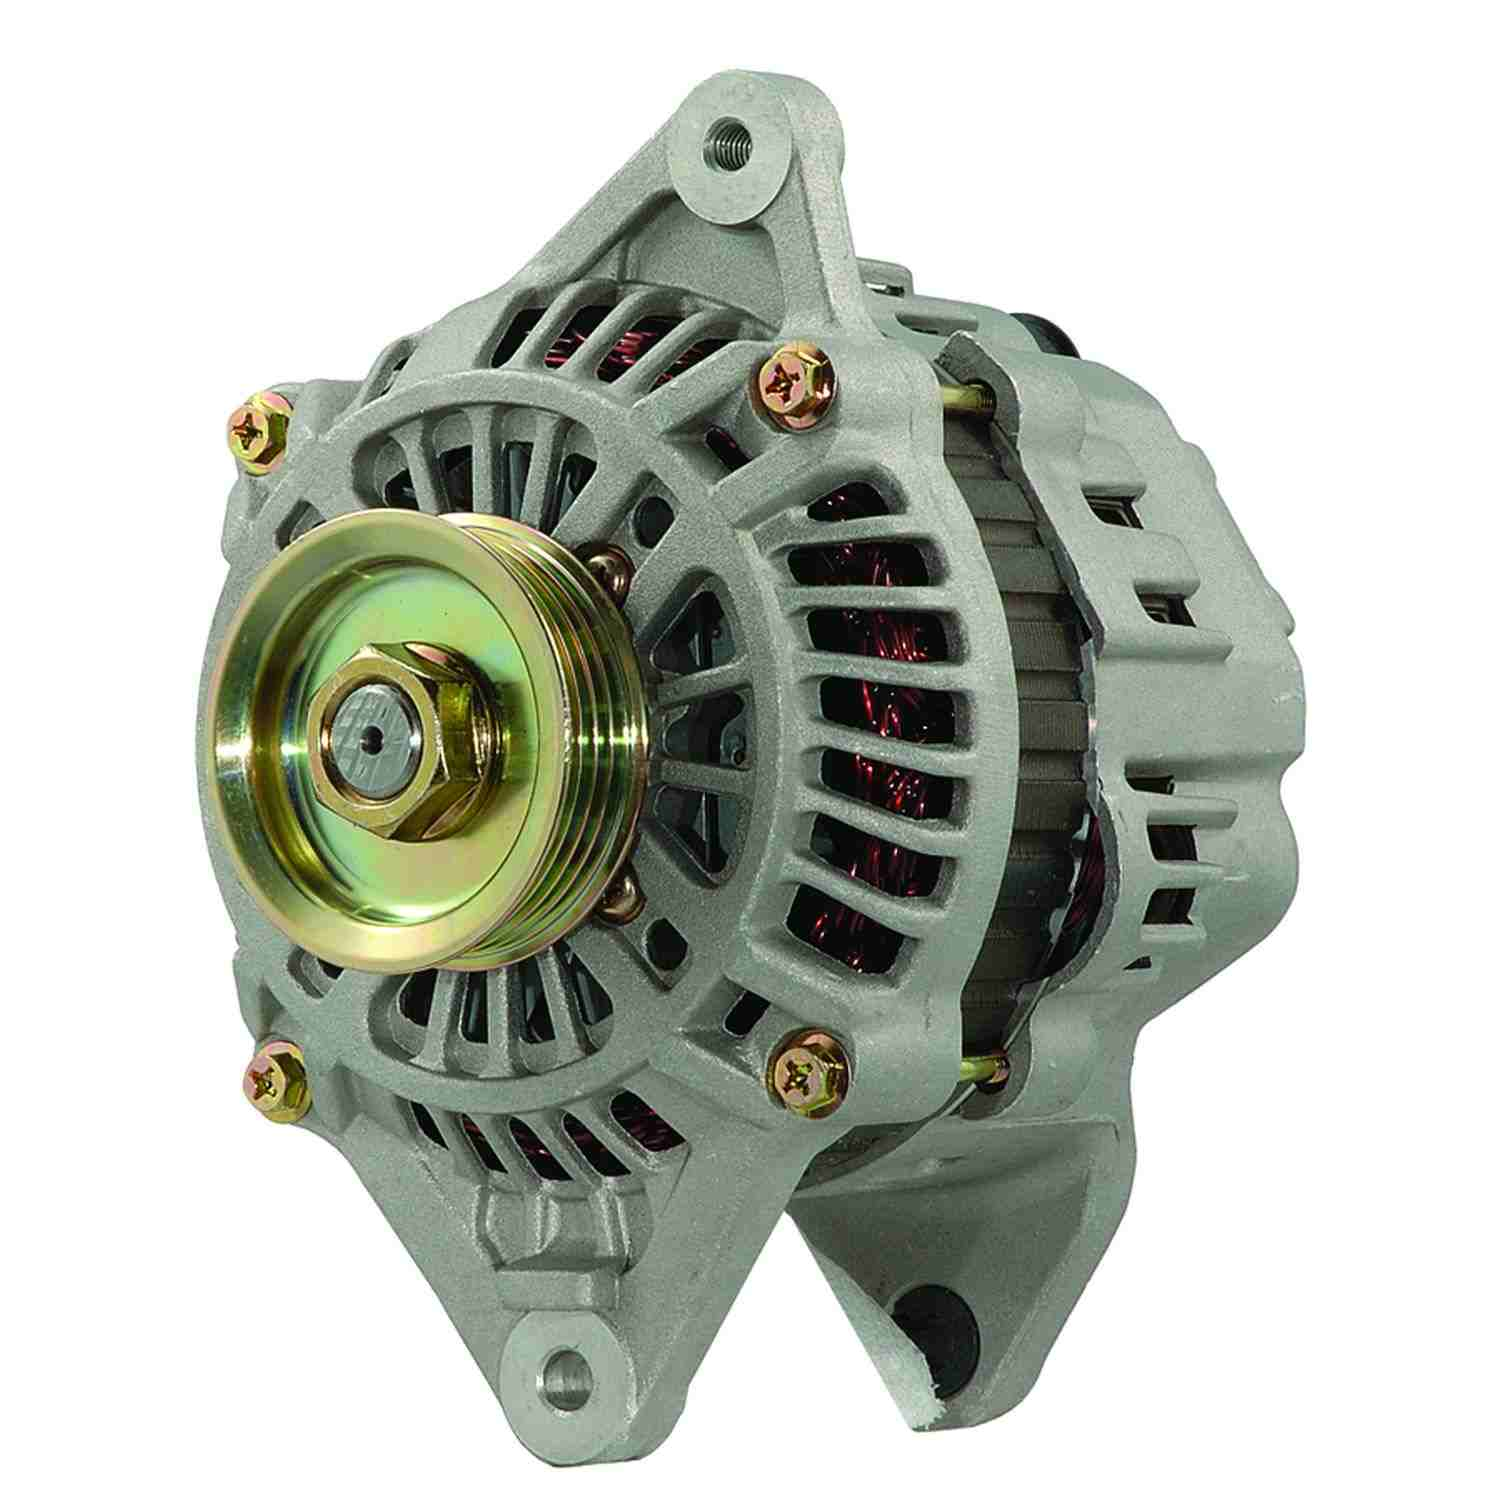 ACDELCO GOLD/PROFESSIONAL - Alternator - DCC 335-1284